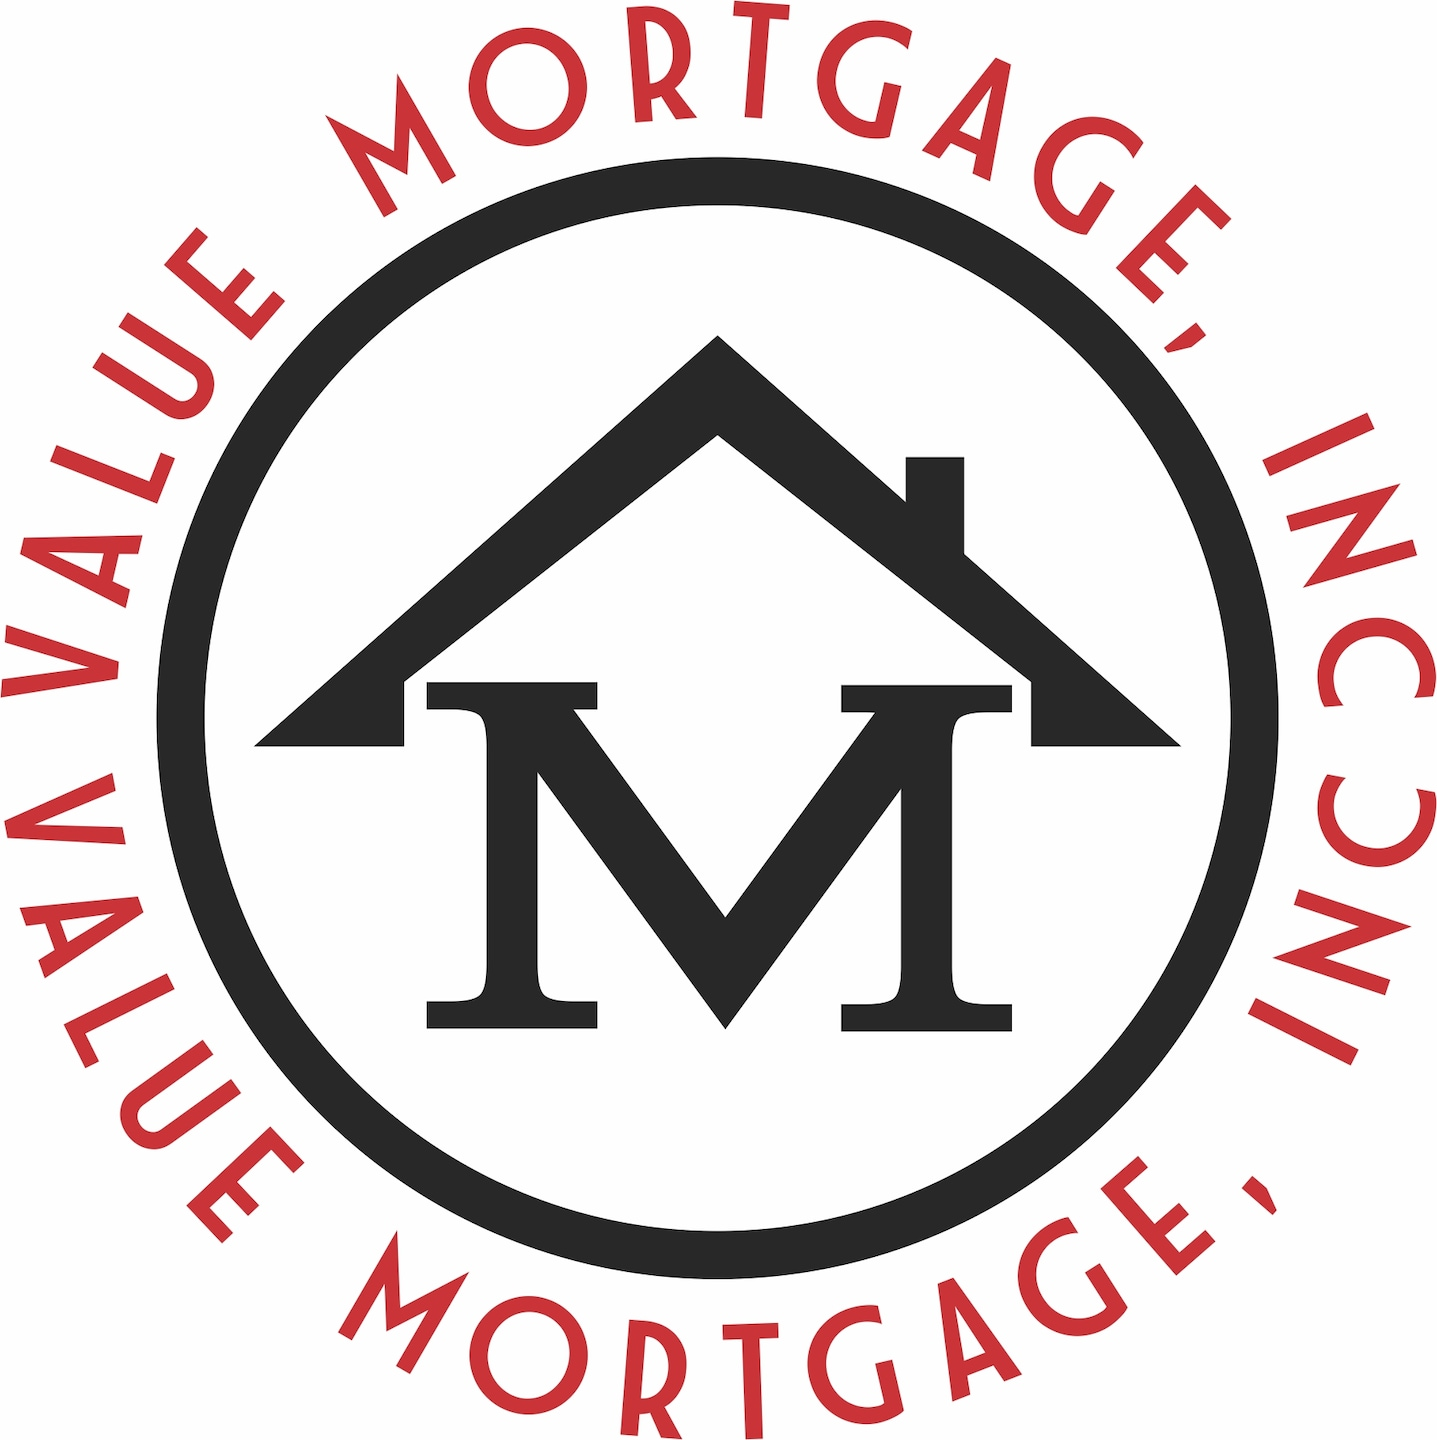 Value Mortgage Inc.            (Todd Kono - Owner)